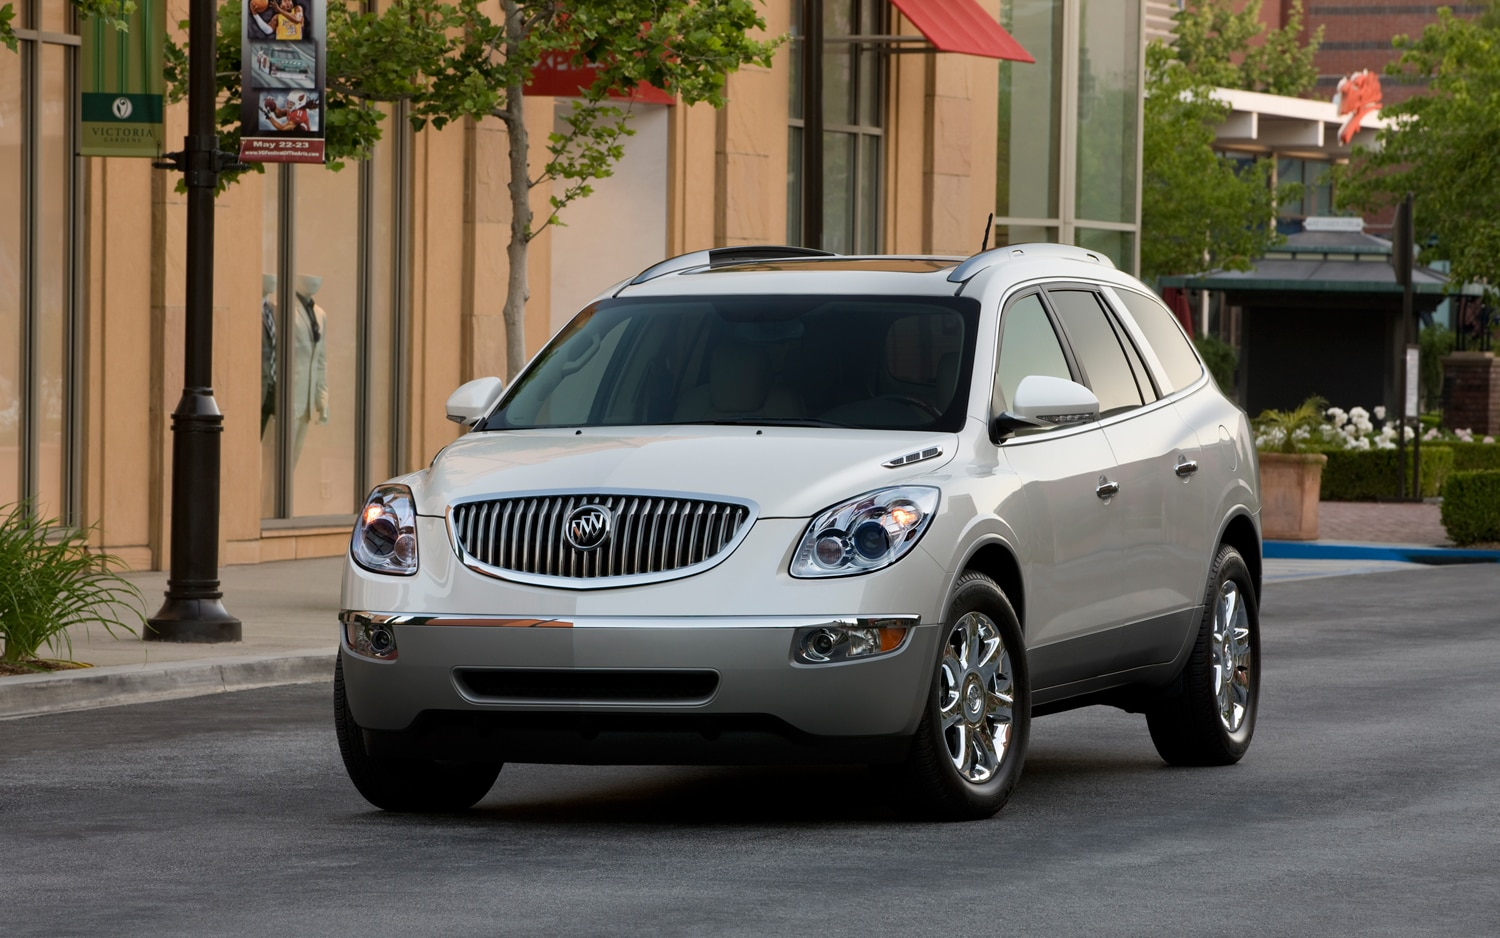 2012 Buick Enclave AWD Premium First Test - Truck Trend